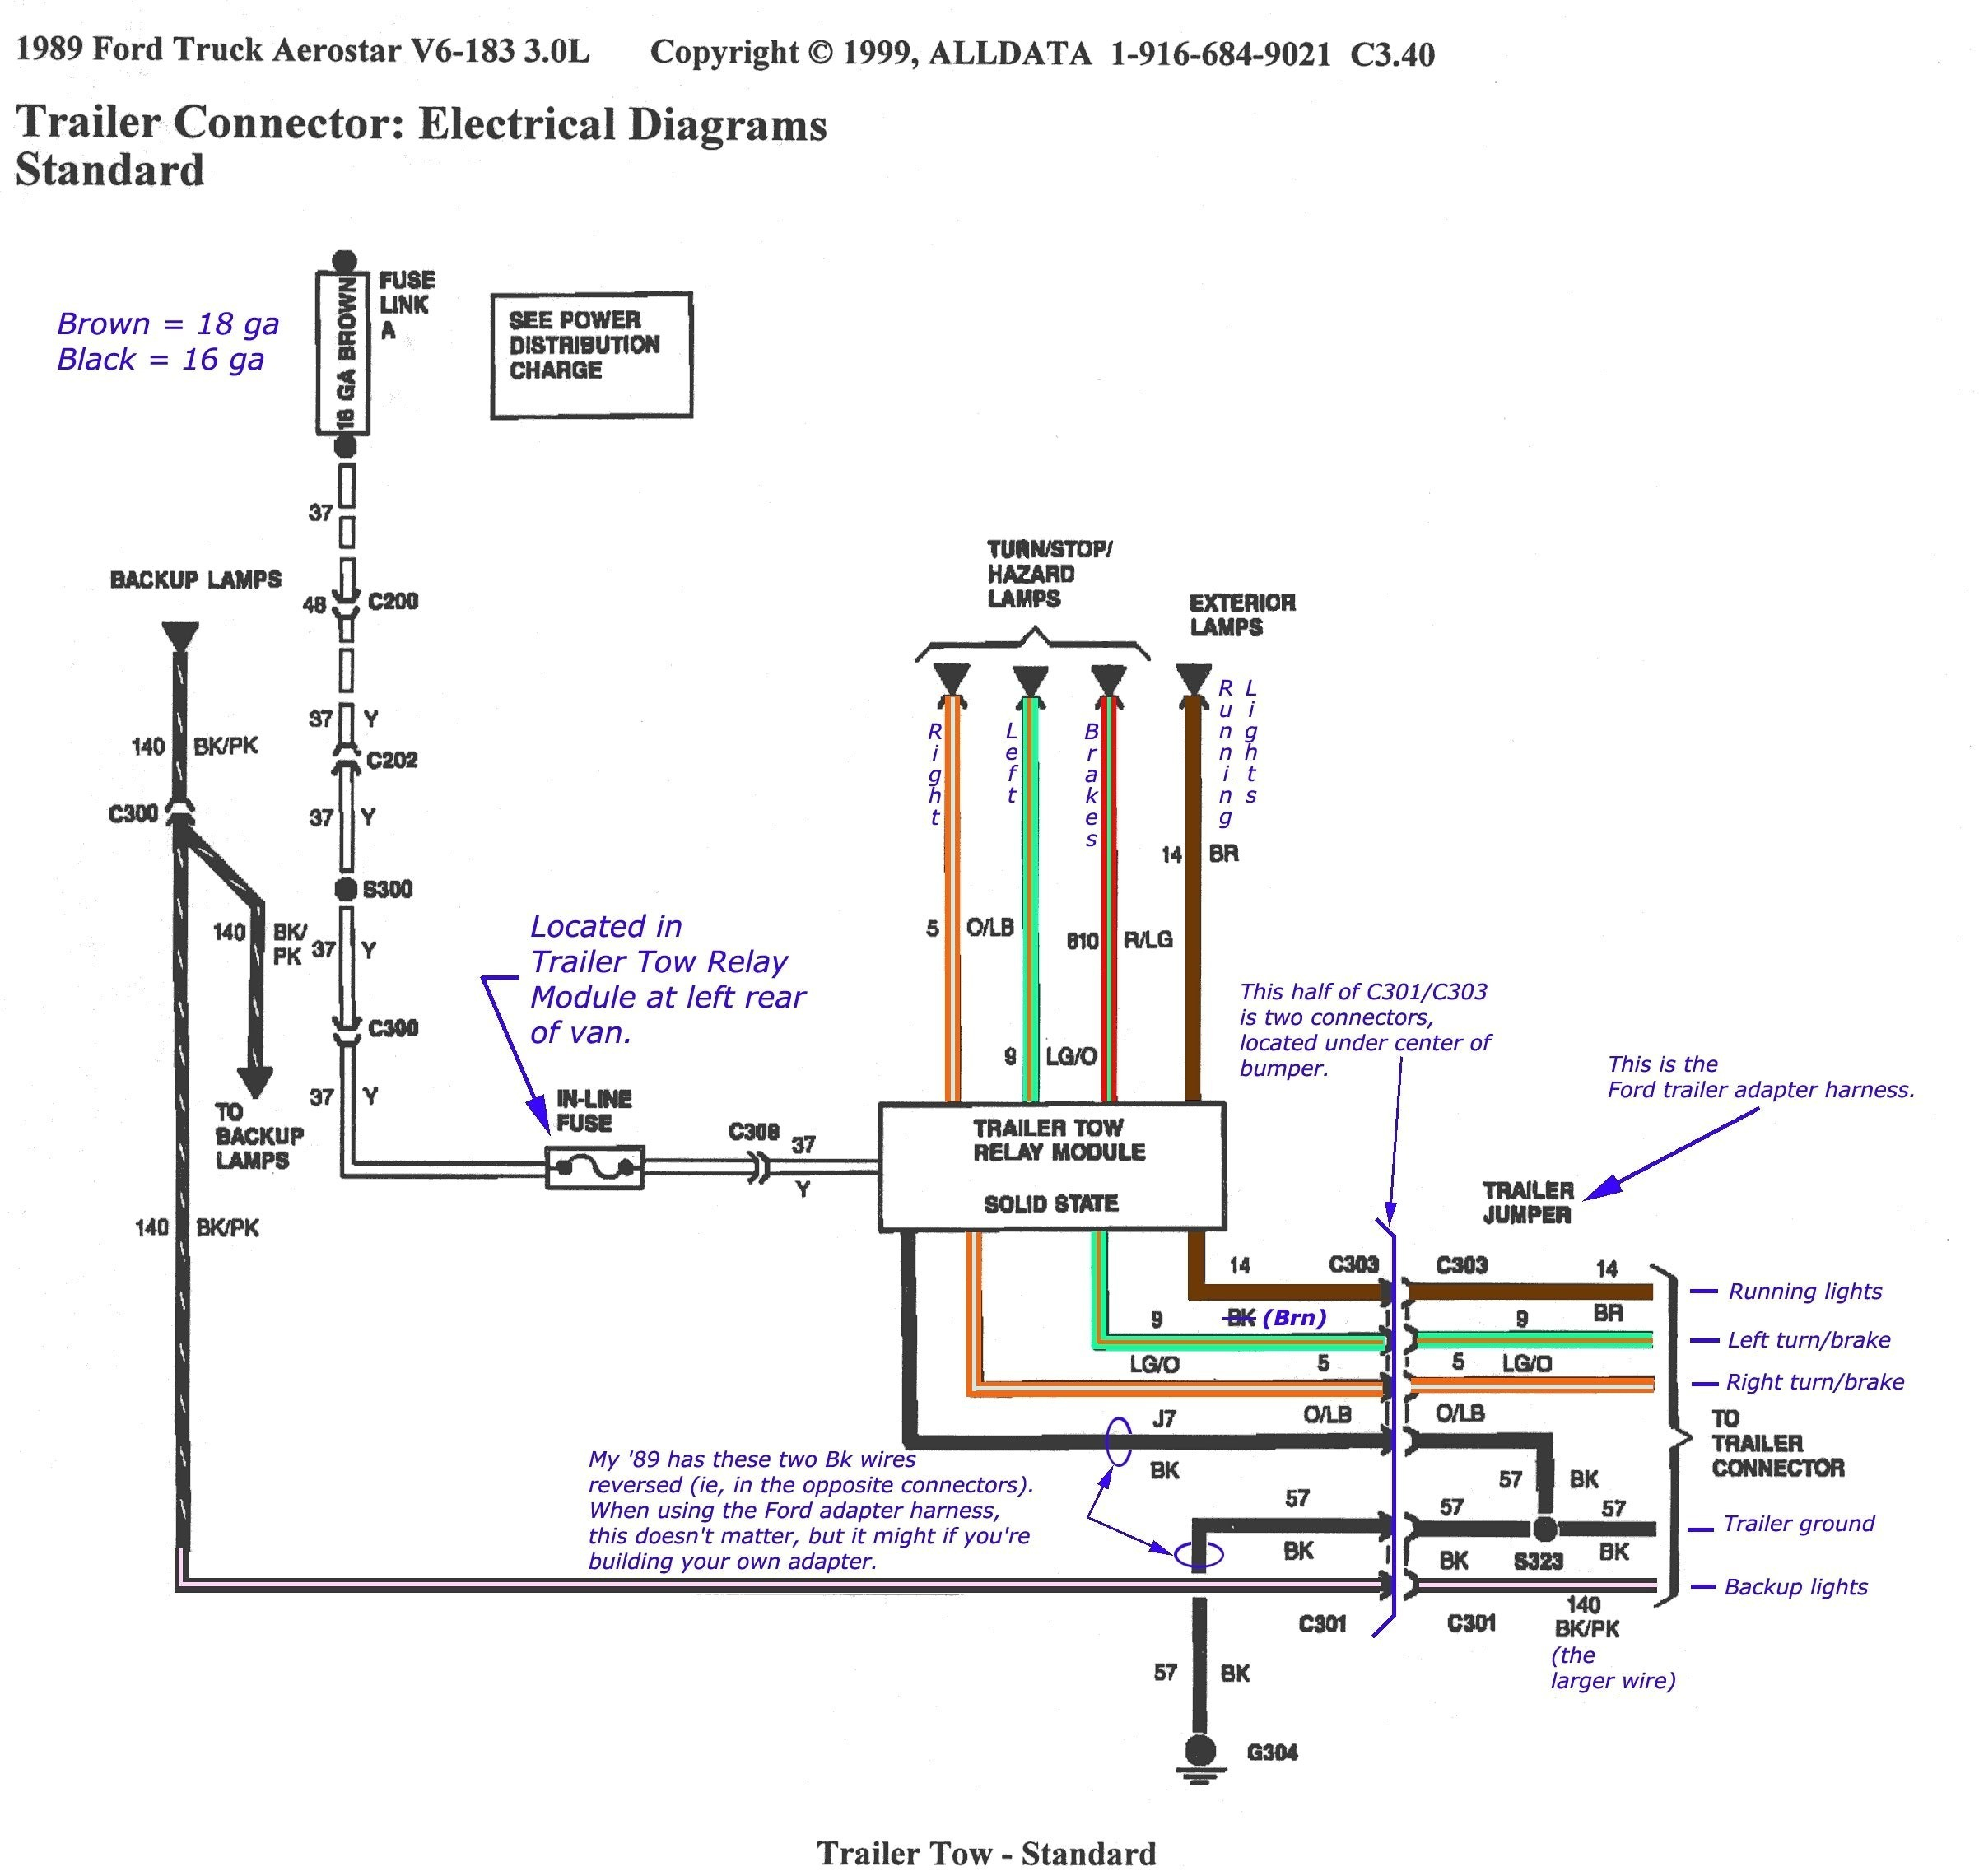 Venter Trailer Wiring Diagram South Africa | Wiring Library - Trailer Wiring Diagram In South Africa